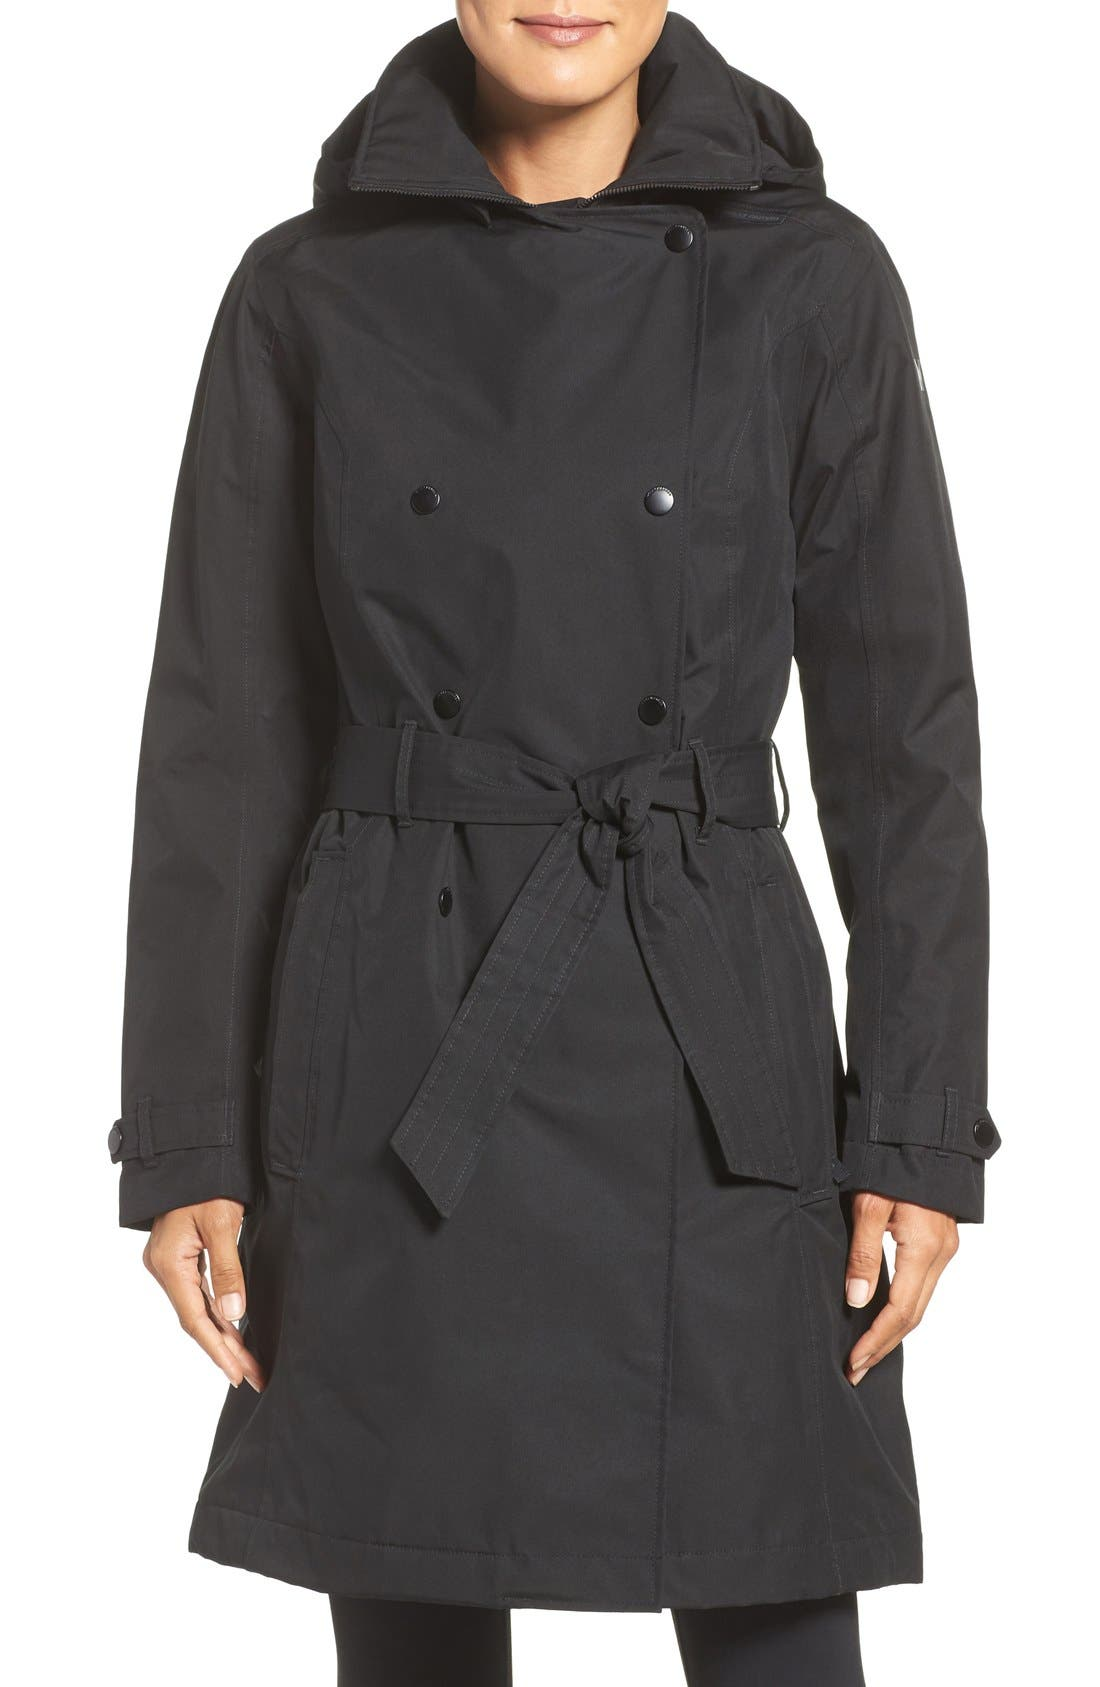 'Welsey' Insulated Waterproof Trench Coat,                             Main thumbnail 1, color,                             001